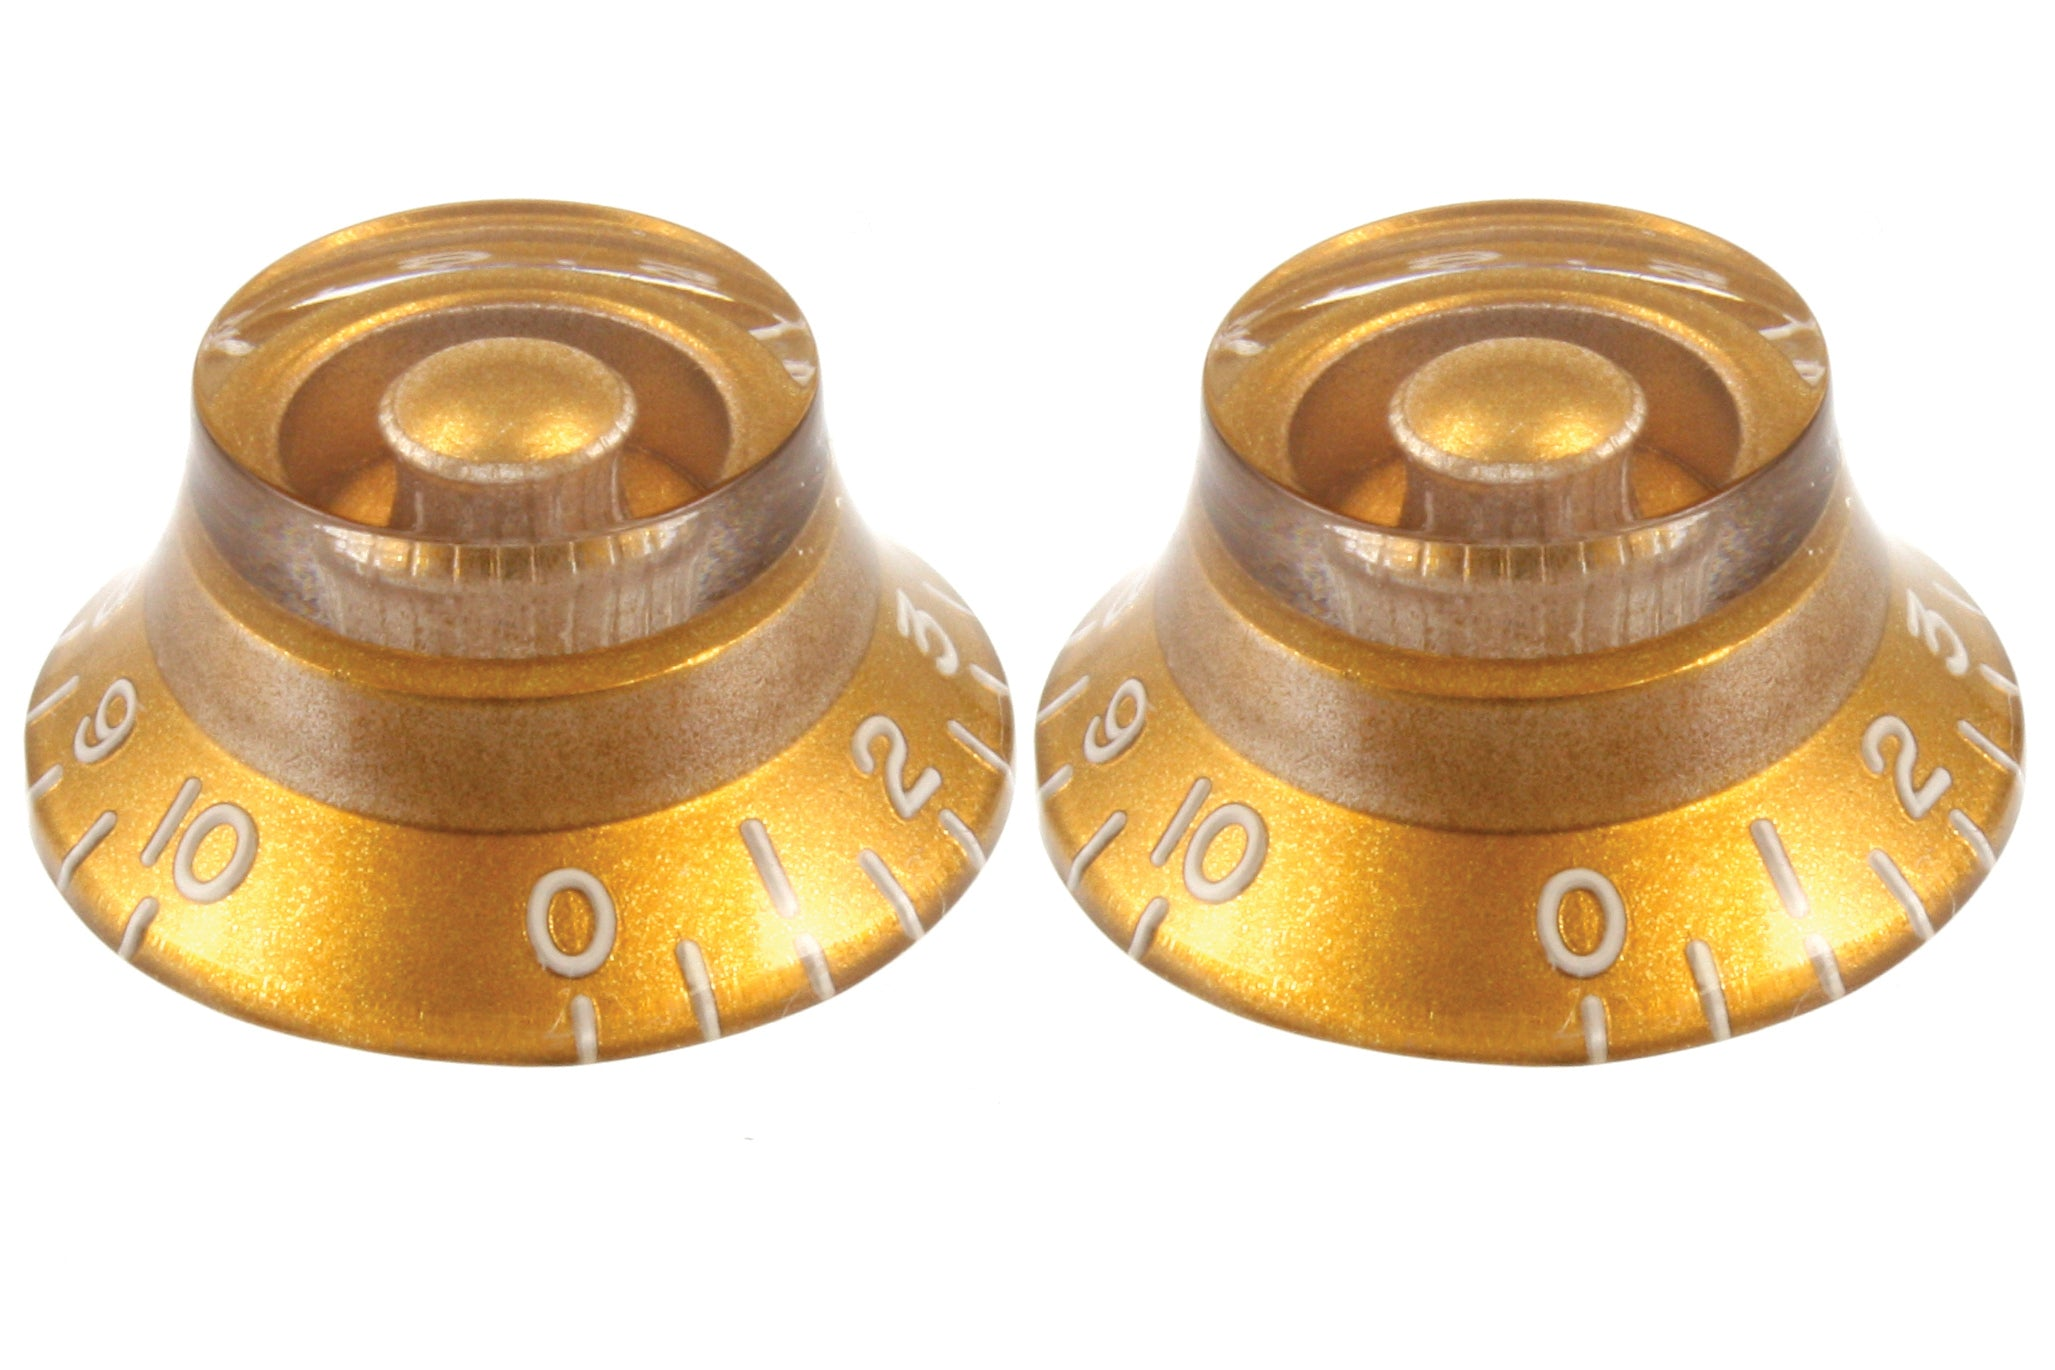 PK-0140 Set of 2 Vintage-style Bell Knobs